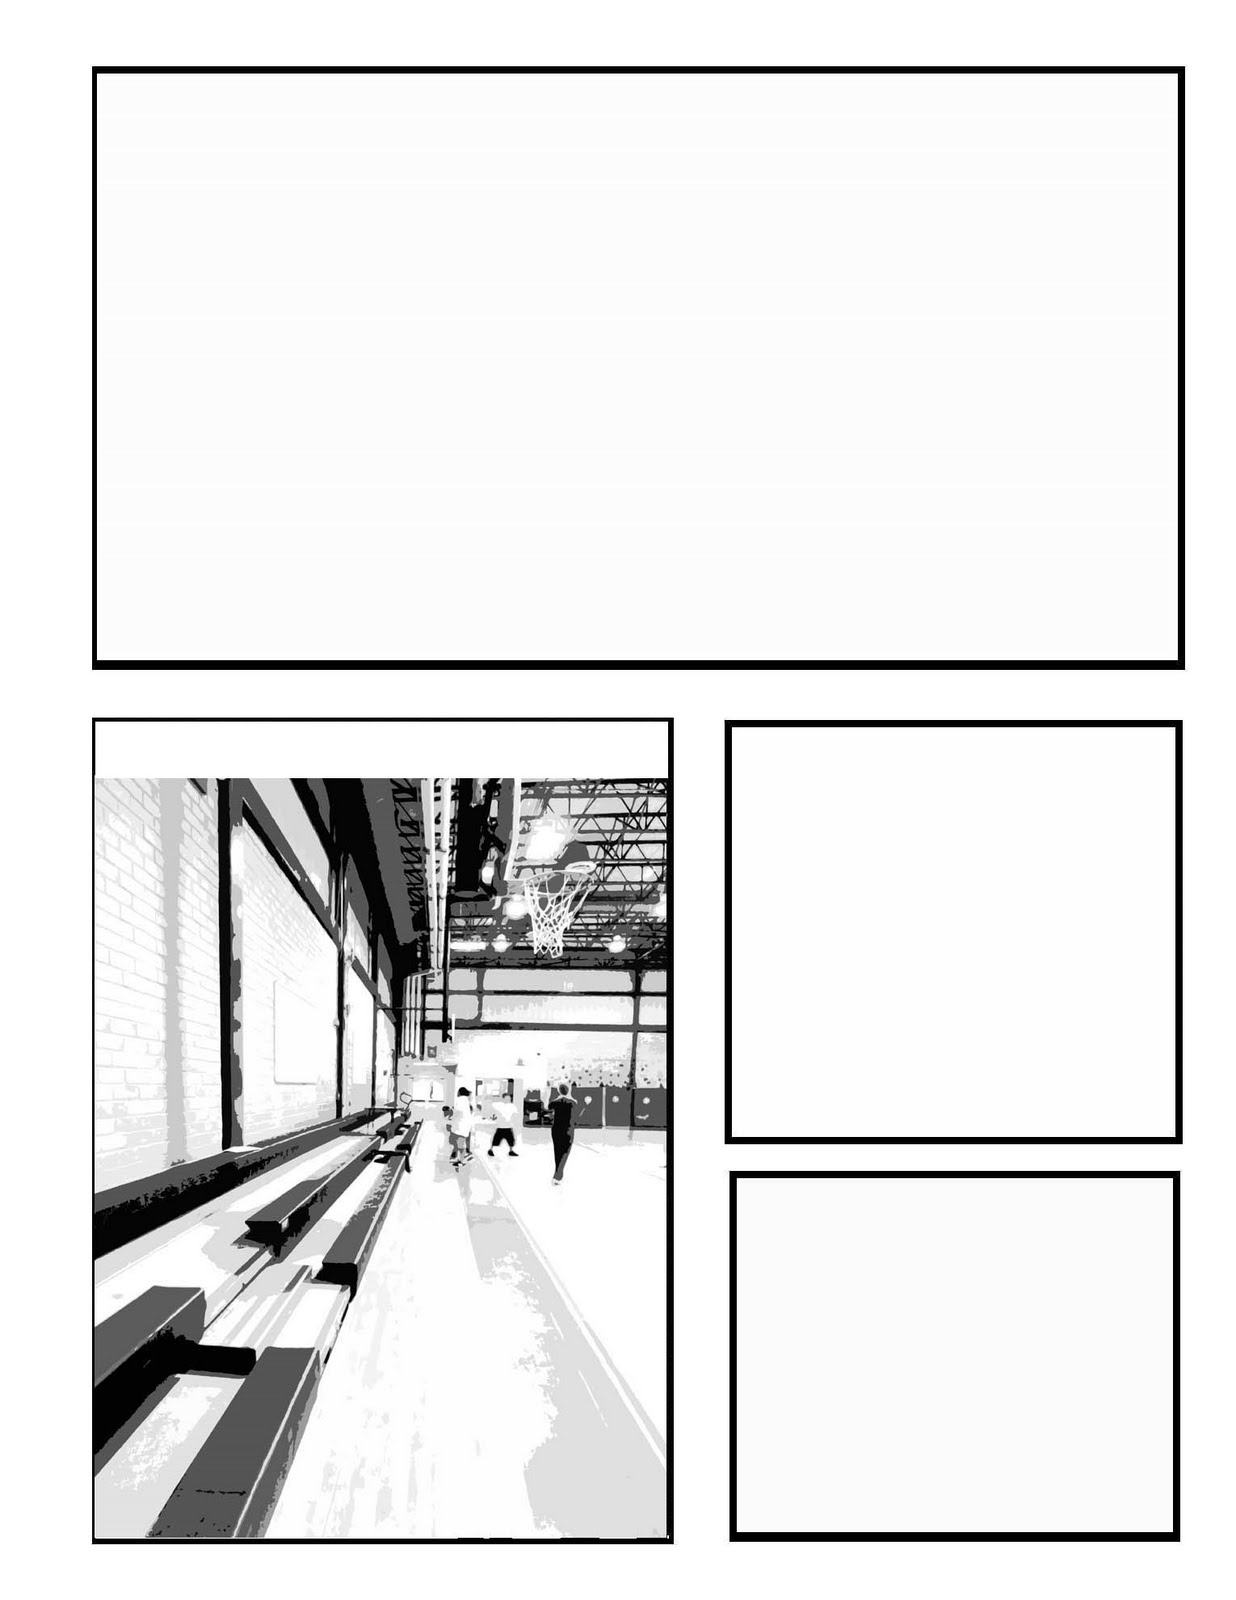 Comic Template With Drawings Comic page templates below